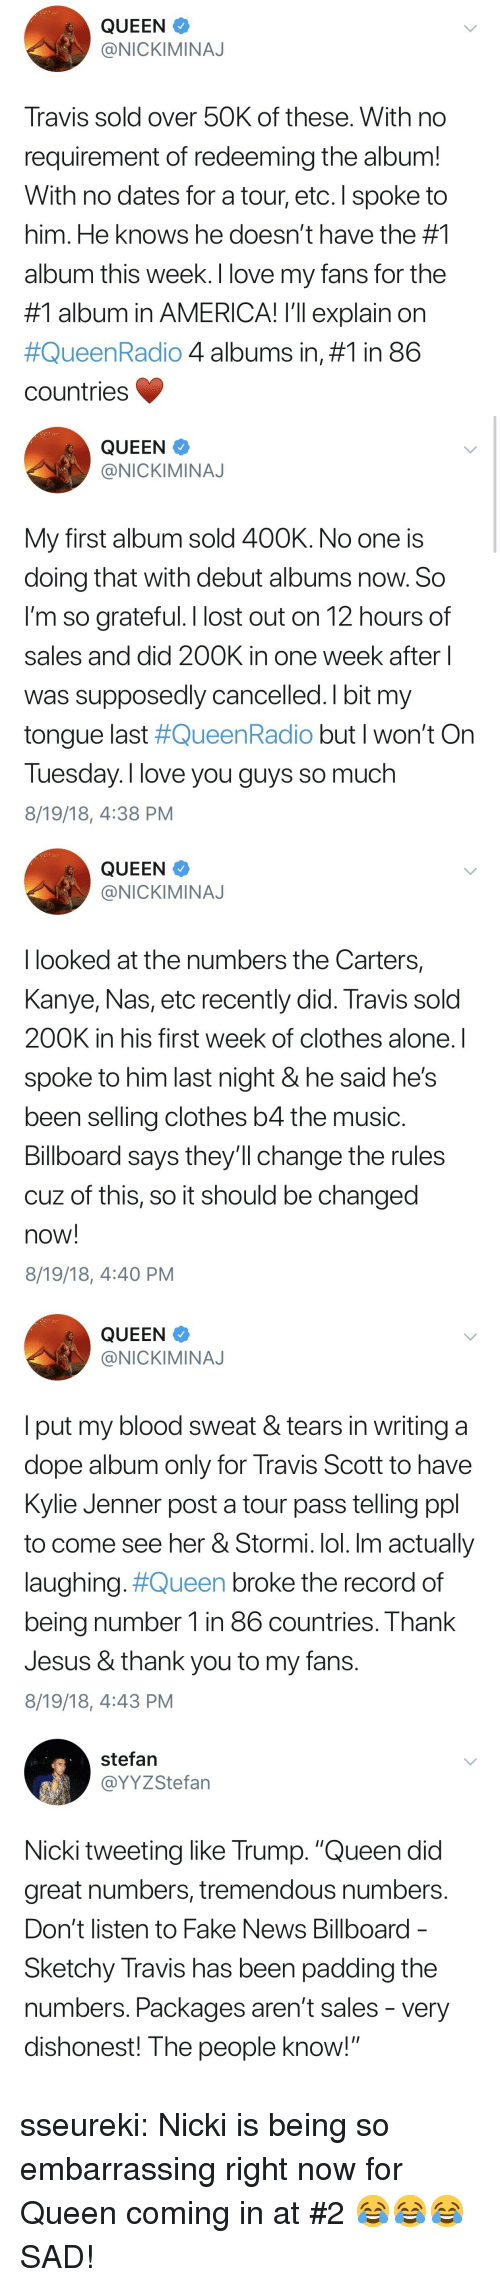 """Being Alone, America, and Billboard: QUEEN  @NICKIMINAJ  Travis sold over 50K of these. With no  requirement of redeeming the album!  With no dates for a tour, etc. I spoke to  him. He knows he doesn't have the #1  album this week. I love my fans for the  #1 album in AMERICA! I'll explain on  #QueenRadio 4 albums in, #1 in 86  countries   QUEEN  @NICKIMINAJ  My first album sold 400K. No one is  doing that with debut albums now. So  l'm so grateful. I lost out on 12 hours of  sales and did 200K in one week after  was supposedly cancelled. I bit my  tongue last #QueenRadio but I won't On  Tuesday. I love you guys so much  8/19/18, 4:38 PM   QUEEN  @NICKIMINAJ  I looked at the numbers the Carters,  Kanye, Nas, etc recently did. Travis sold  200K in his first week of clothes alone. I  spoke to him last night & he said he's  been selling clothes b4 the music  Billboard says they'll change the rules  cuz of this, so it should be changed  now!  8/19/18, 4:40 PM   QUEEN  @NICKIMINAJ  l put my blood sweat & tears in writing a  dope album only for Travis Scott to have  Kylie Jenner post a tour pass telling ppl  to come see her & Stormi. lol. Im actually  laughing#Queen broke the record of  being number 1 in 86 countries. Thank  Jesus & thank you to my fans.  8/19/18, 4:43 PM   stefan  @YYZStefan  Nicki tweeting like Trump. """"Queen did  great numbers, tremendous numbers  Don't listen to Fake News Billboard  Sketchy Travis has been padding the  numbers. Packages aren't sales - very  dishonest! The people know! sseureki:  Nicki is being so embarrassing right now for Queen coming in at #2 😂😂😂  SAD!"""